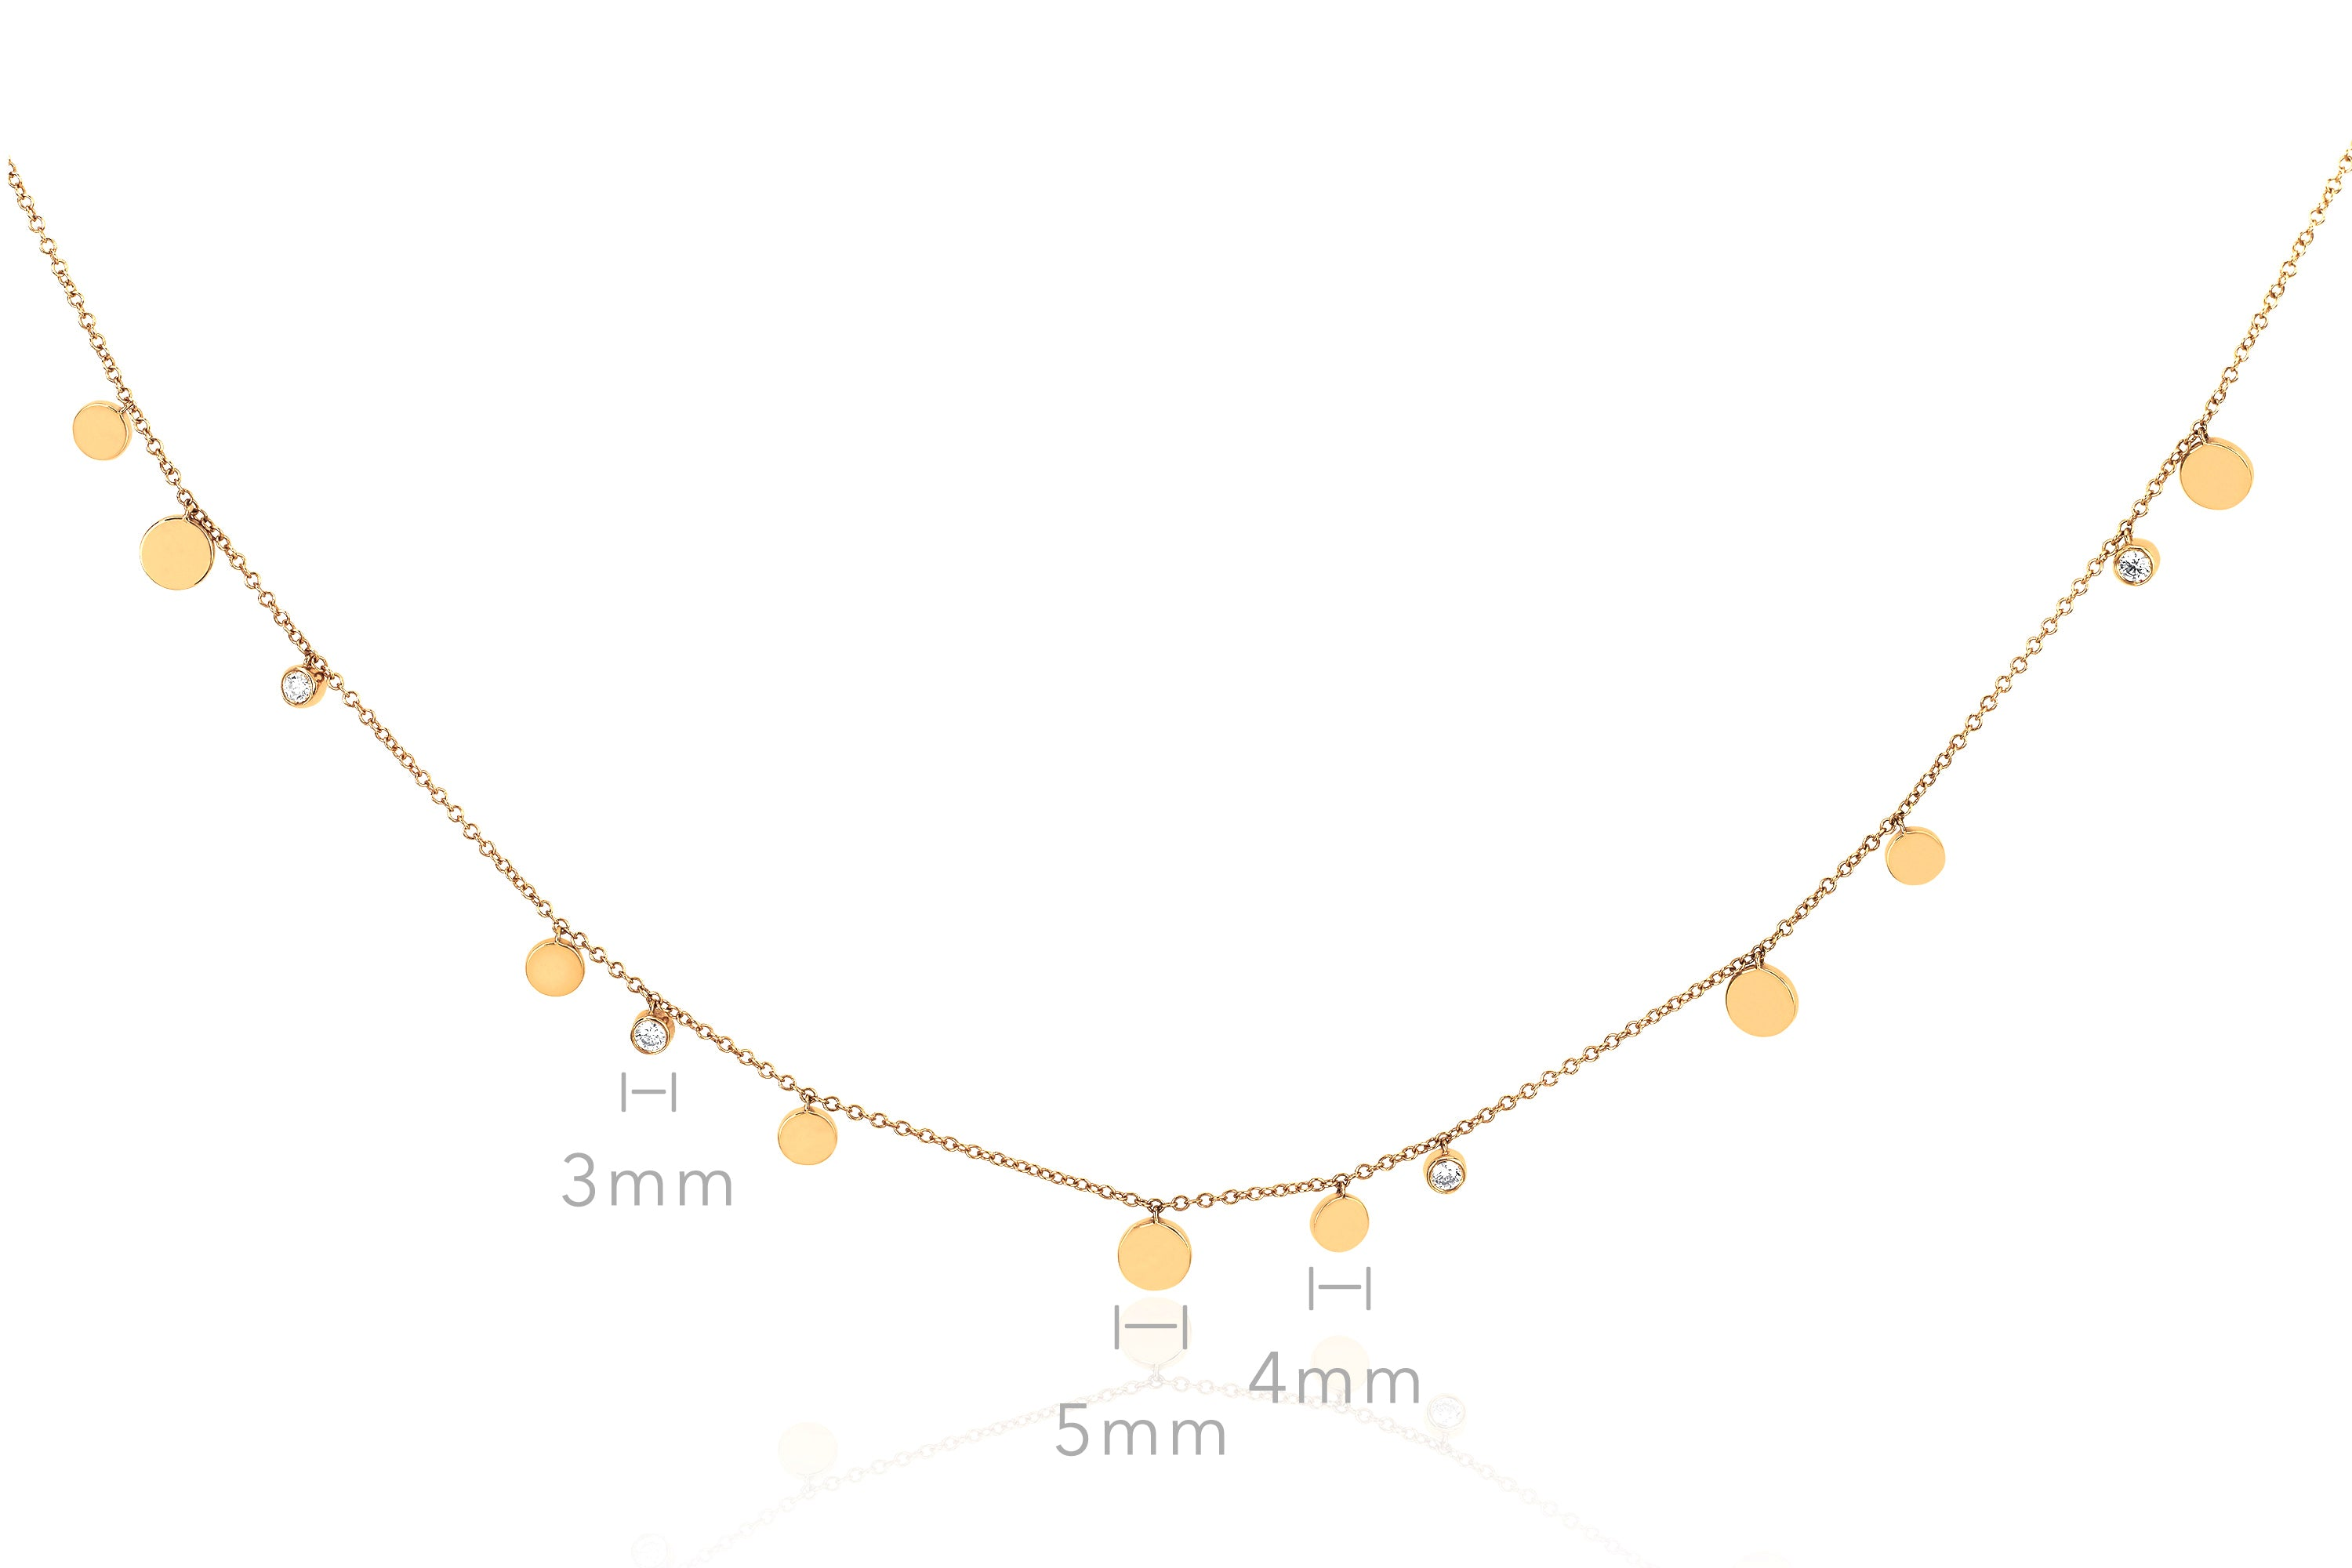 Gold & Diamond Confetti Necklace